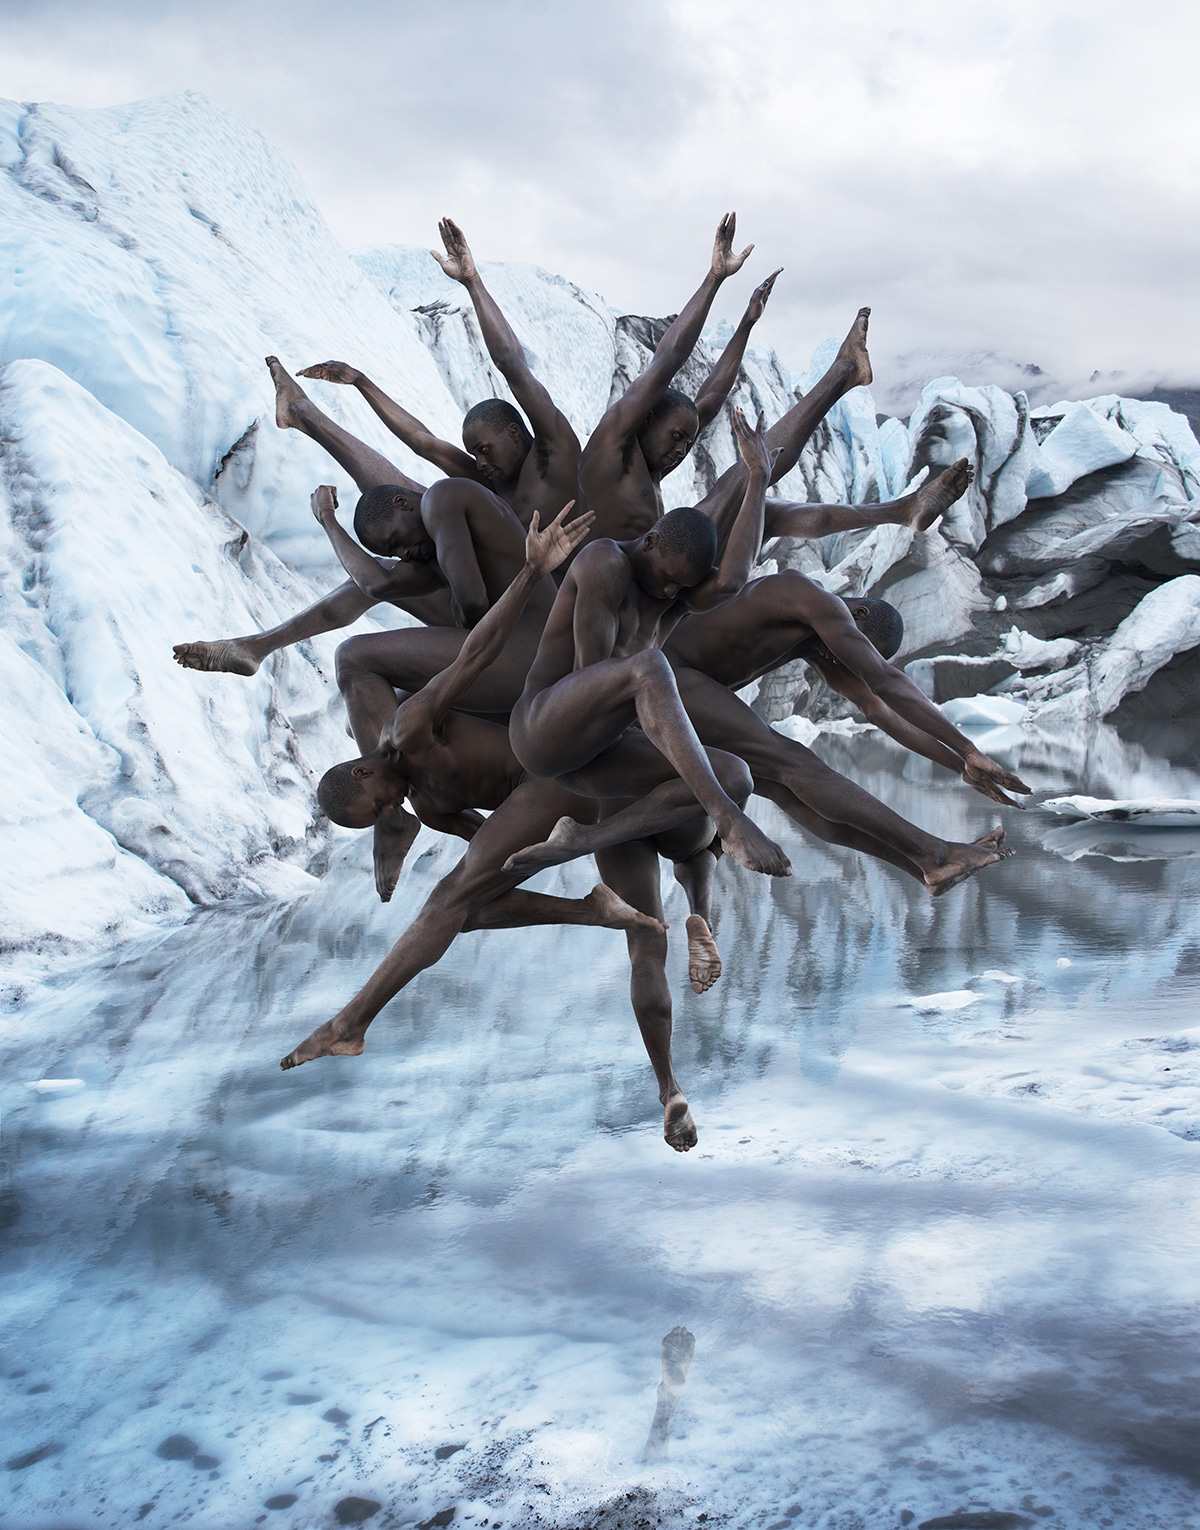 Stunning Poses By Dancers in Surreal Gravity-Defying Photos